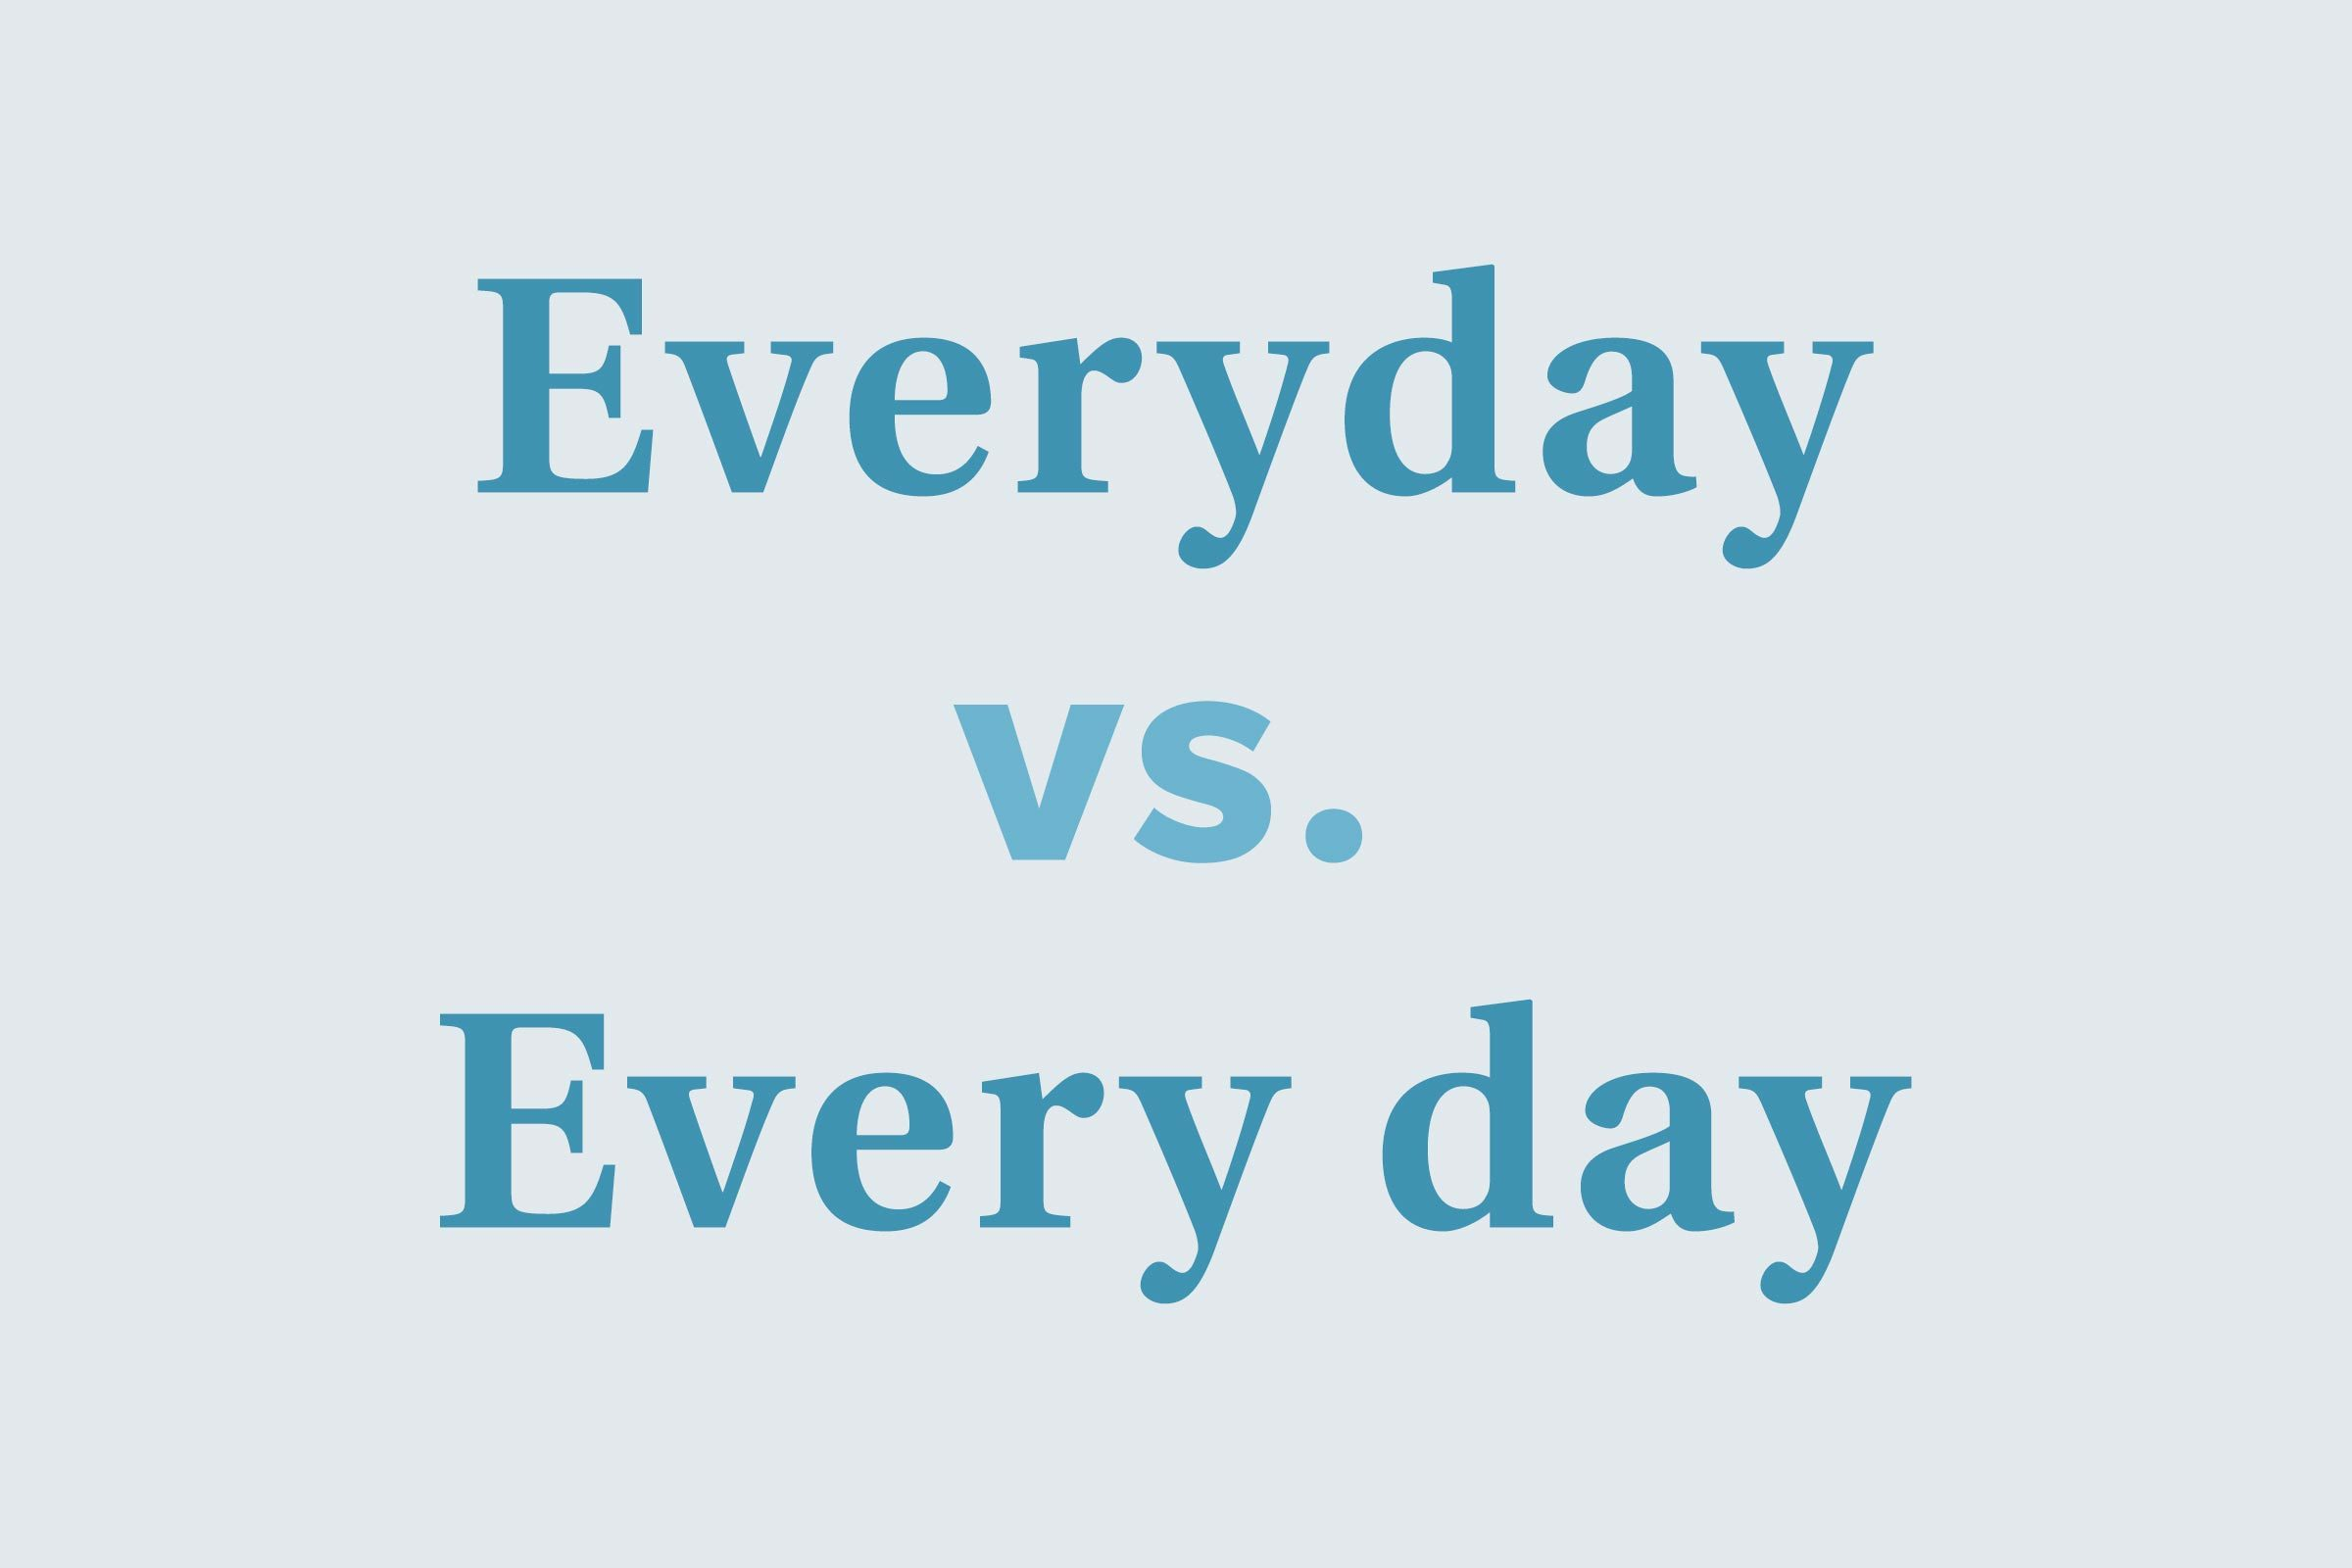 Everyday vs. Every day